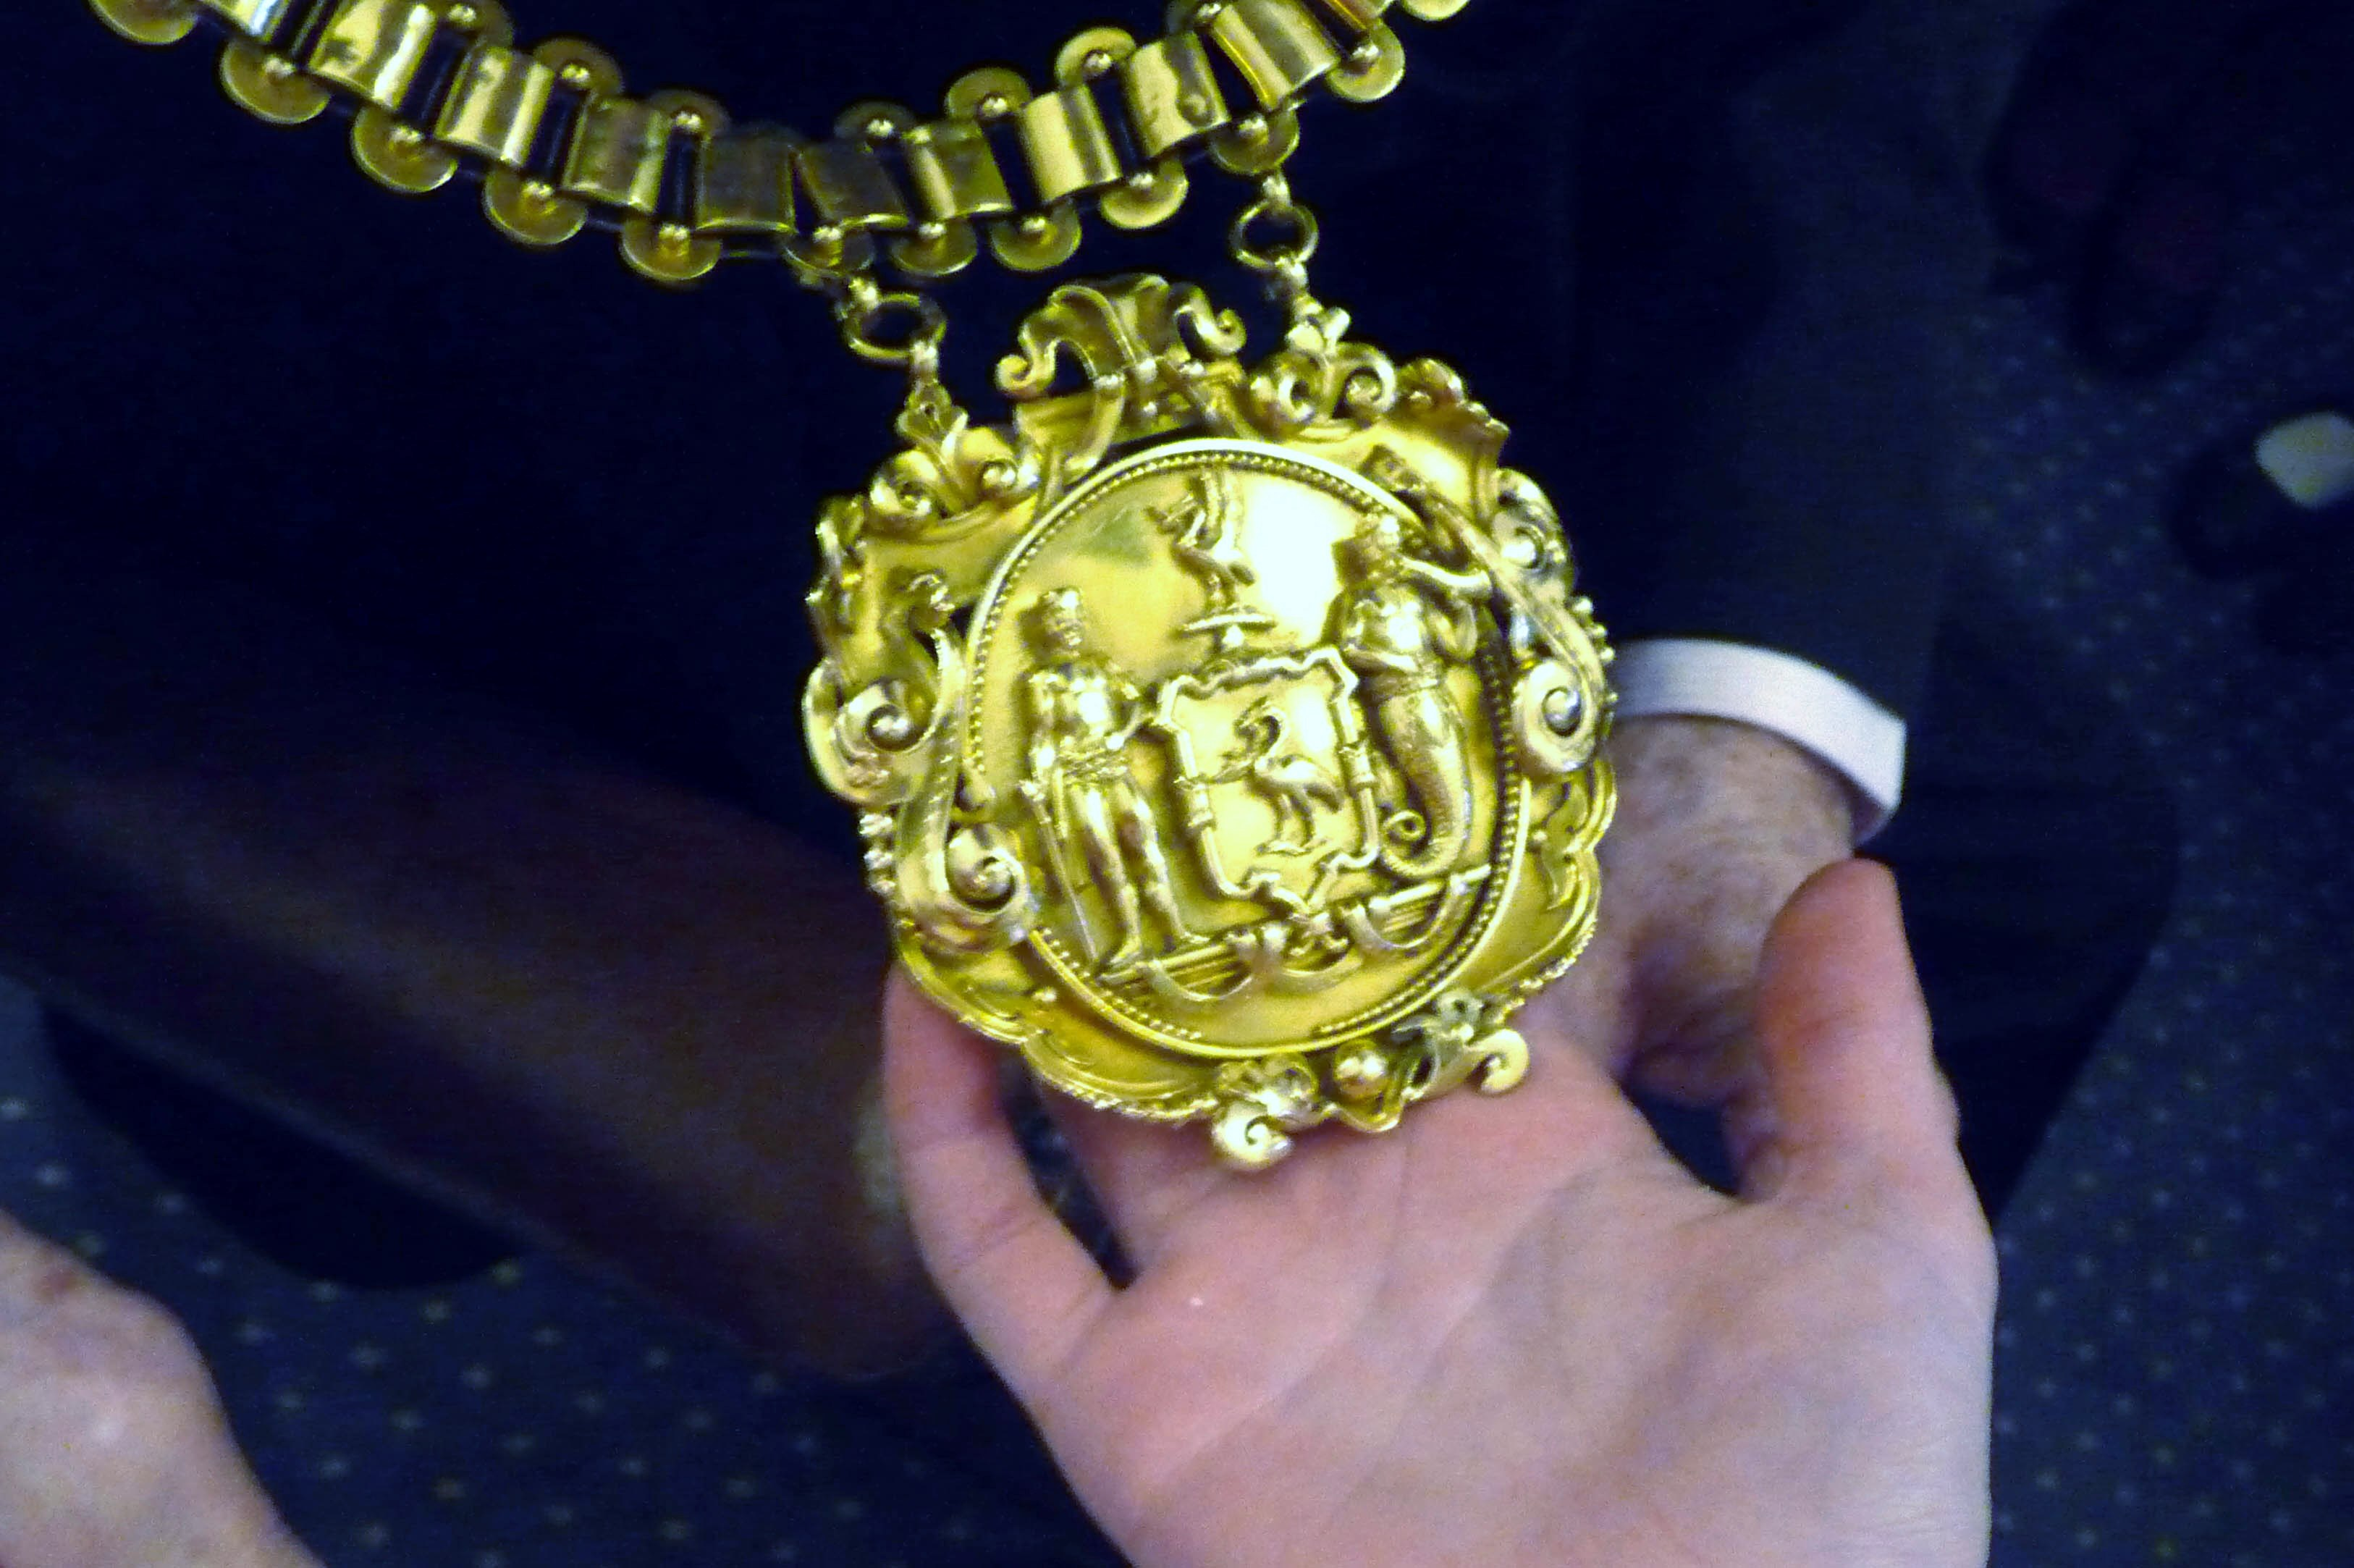 the golden Chain of Office of the Lord Mayor of Liverpool